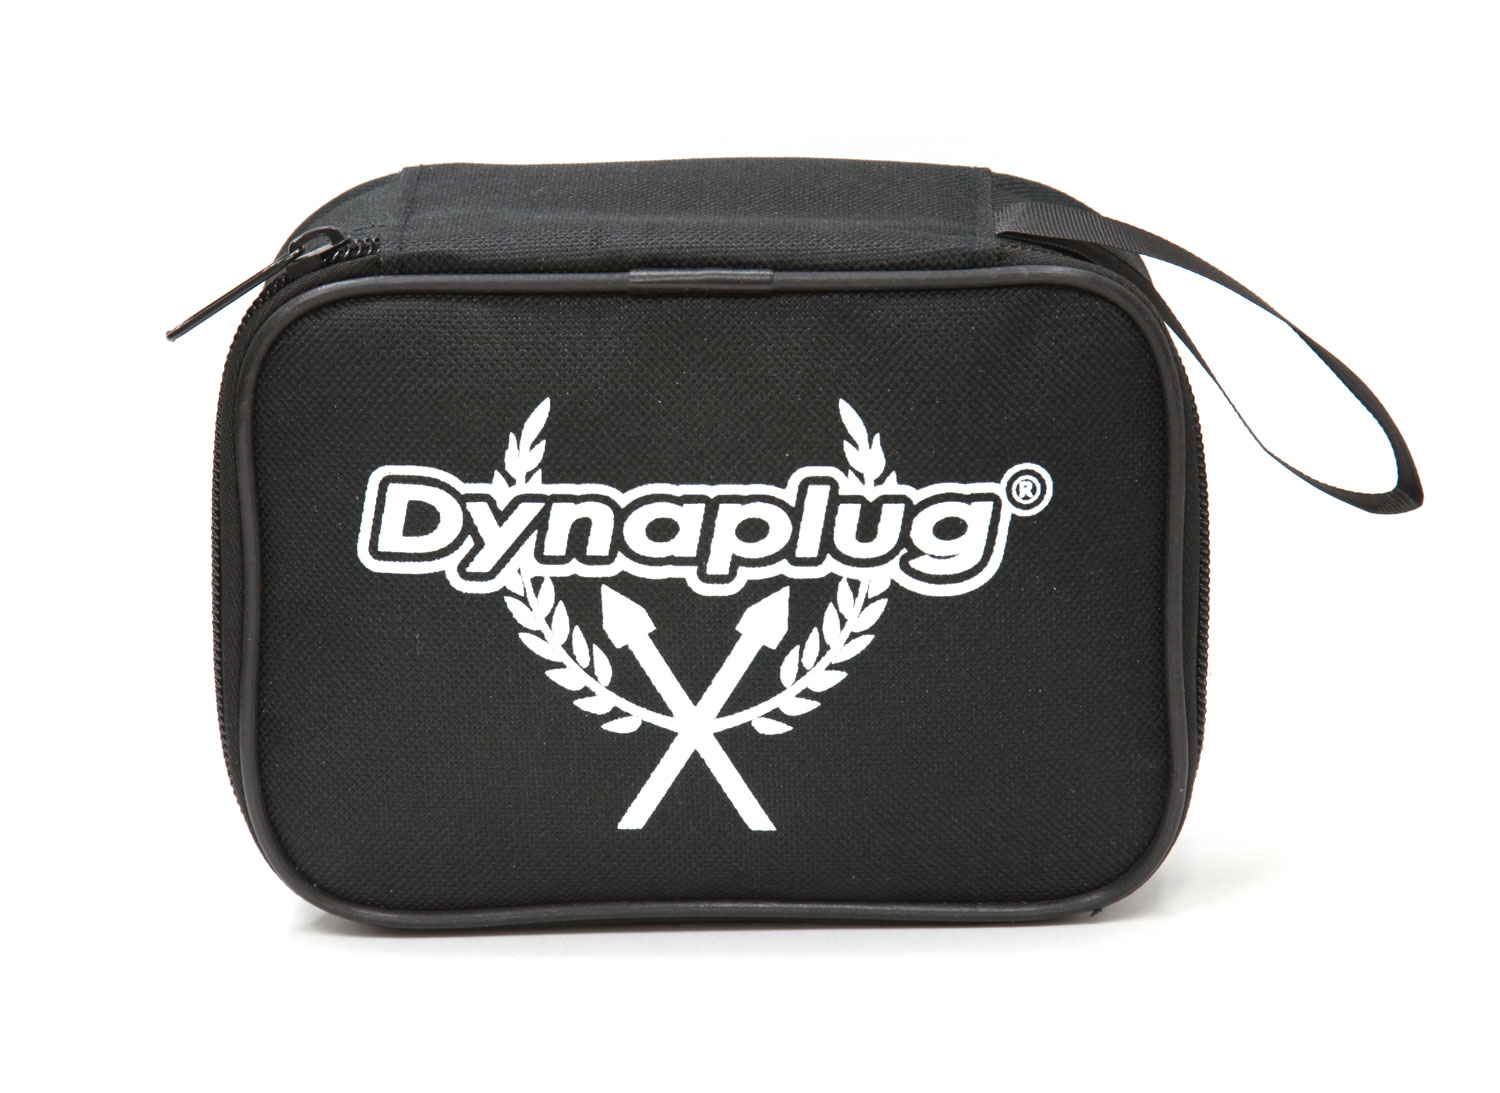 Nylon carry pouch for Dynaplug tools